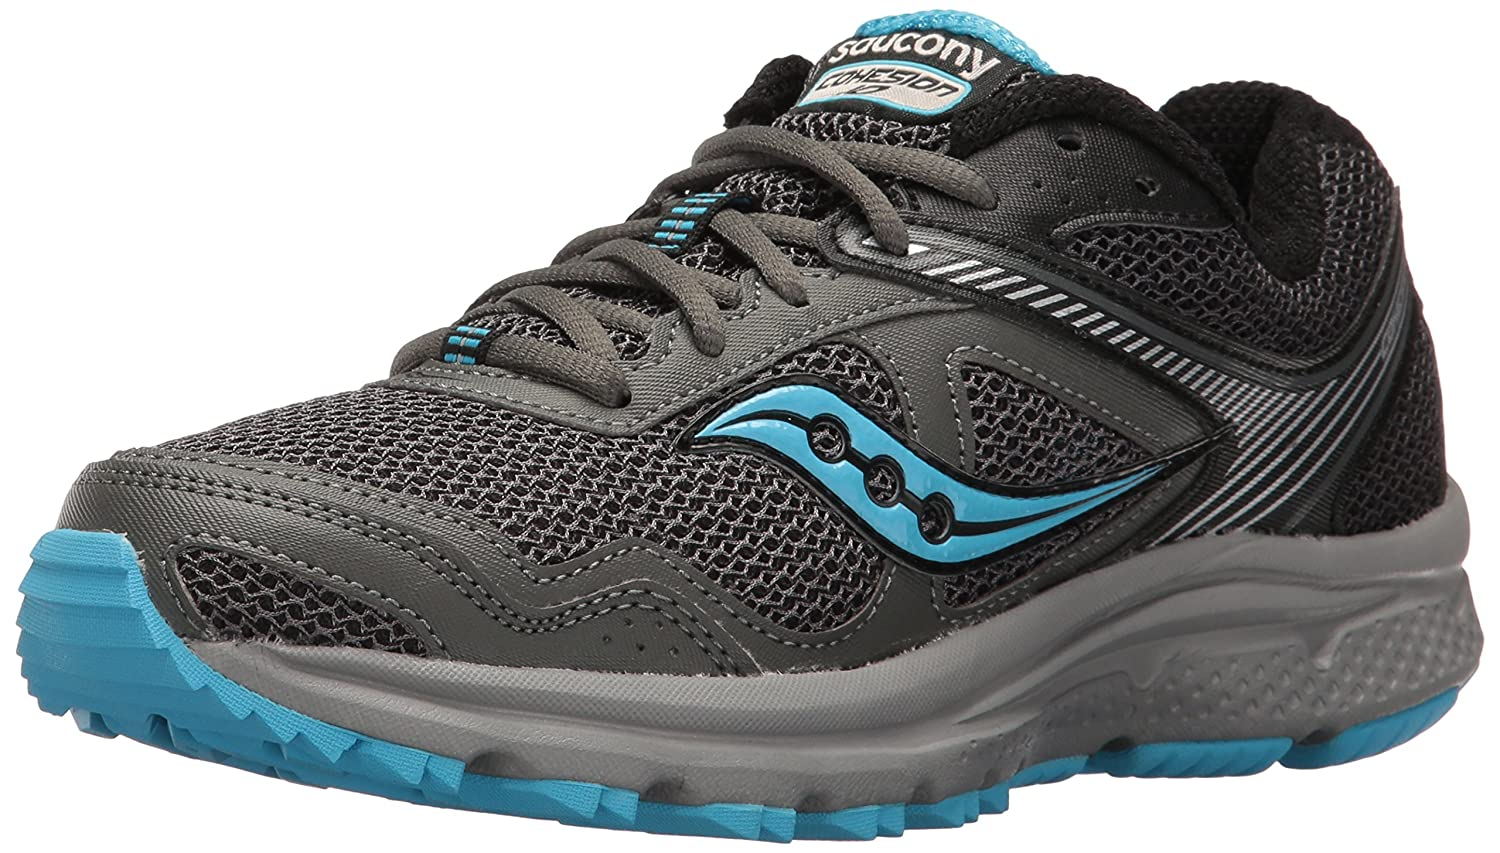 Saucony Women's Cohesion 10 Running Shoe B01HPGLG2M 9 B(M) US|Grey/Black/Blue